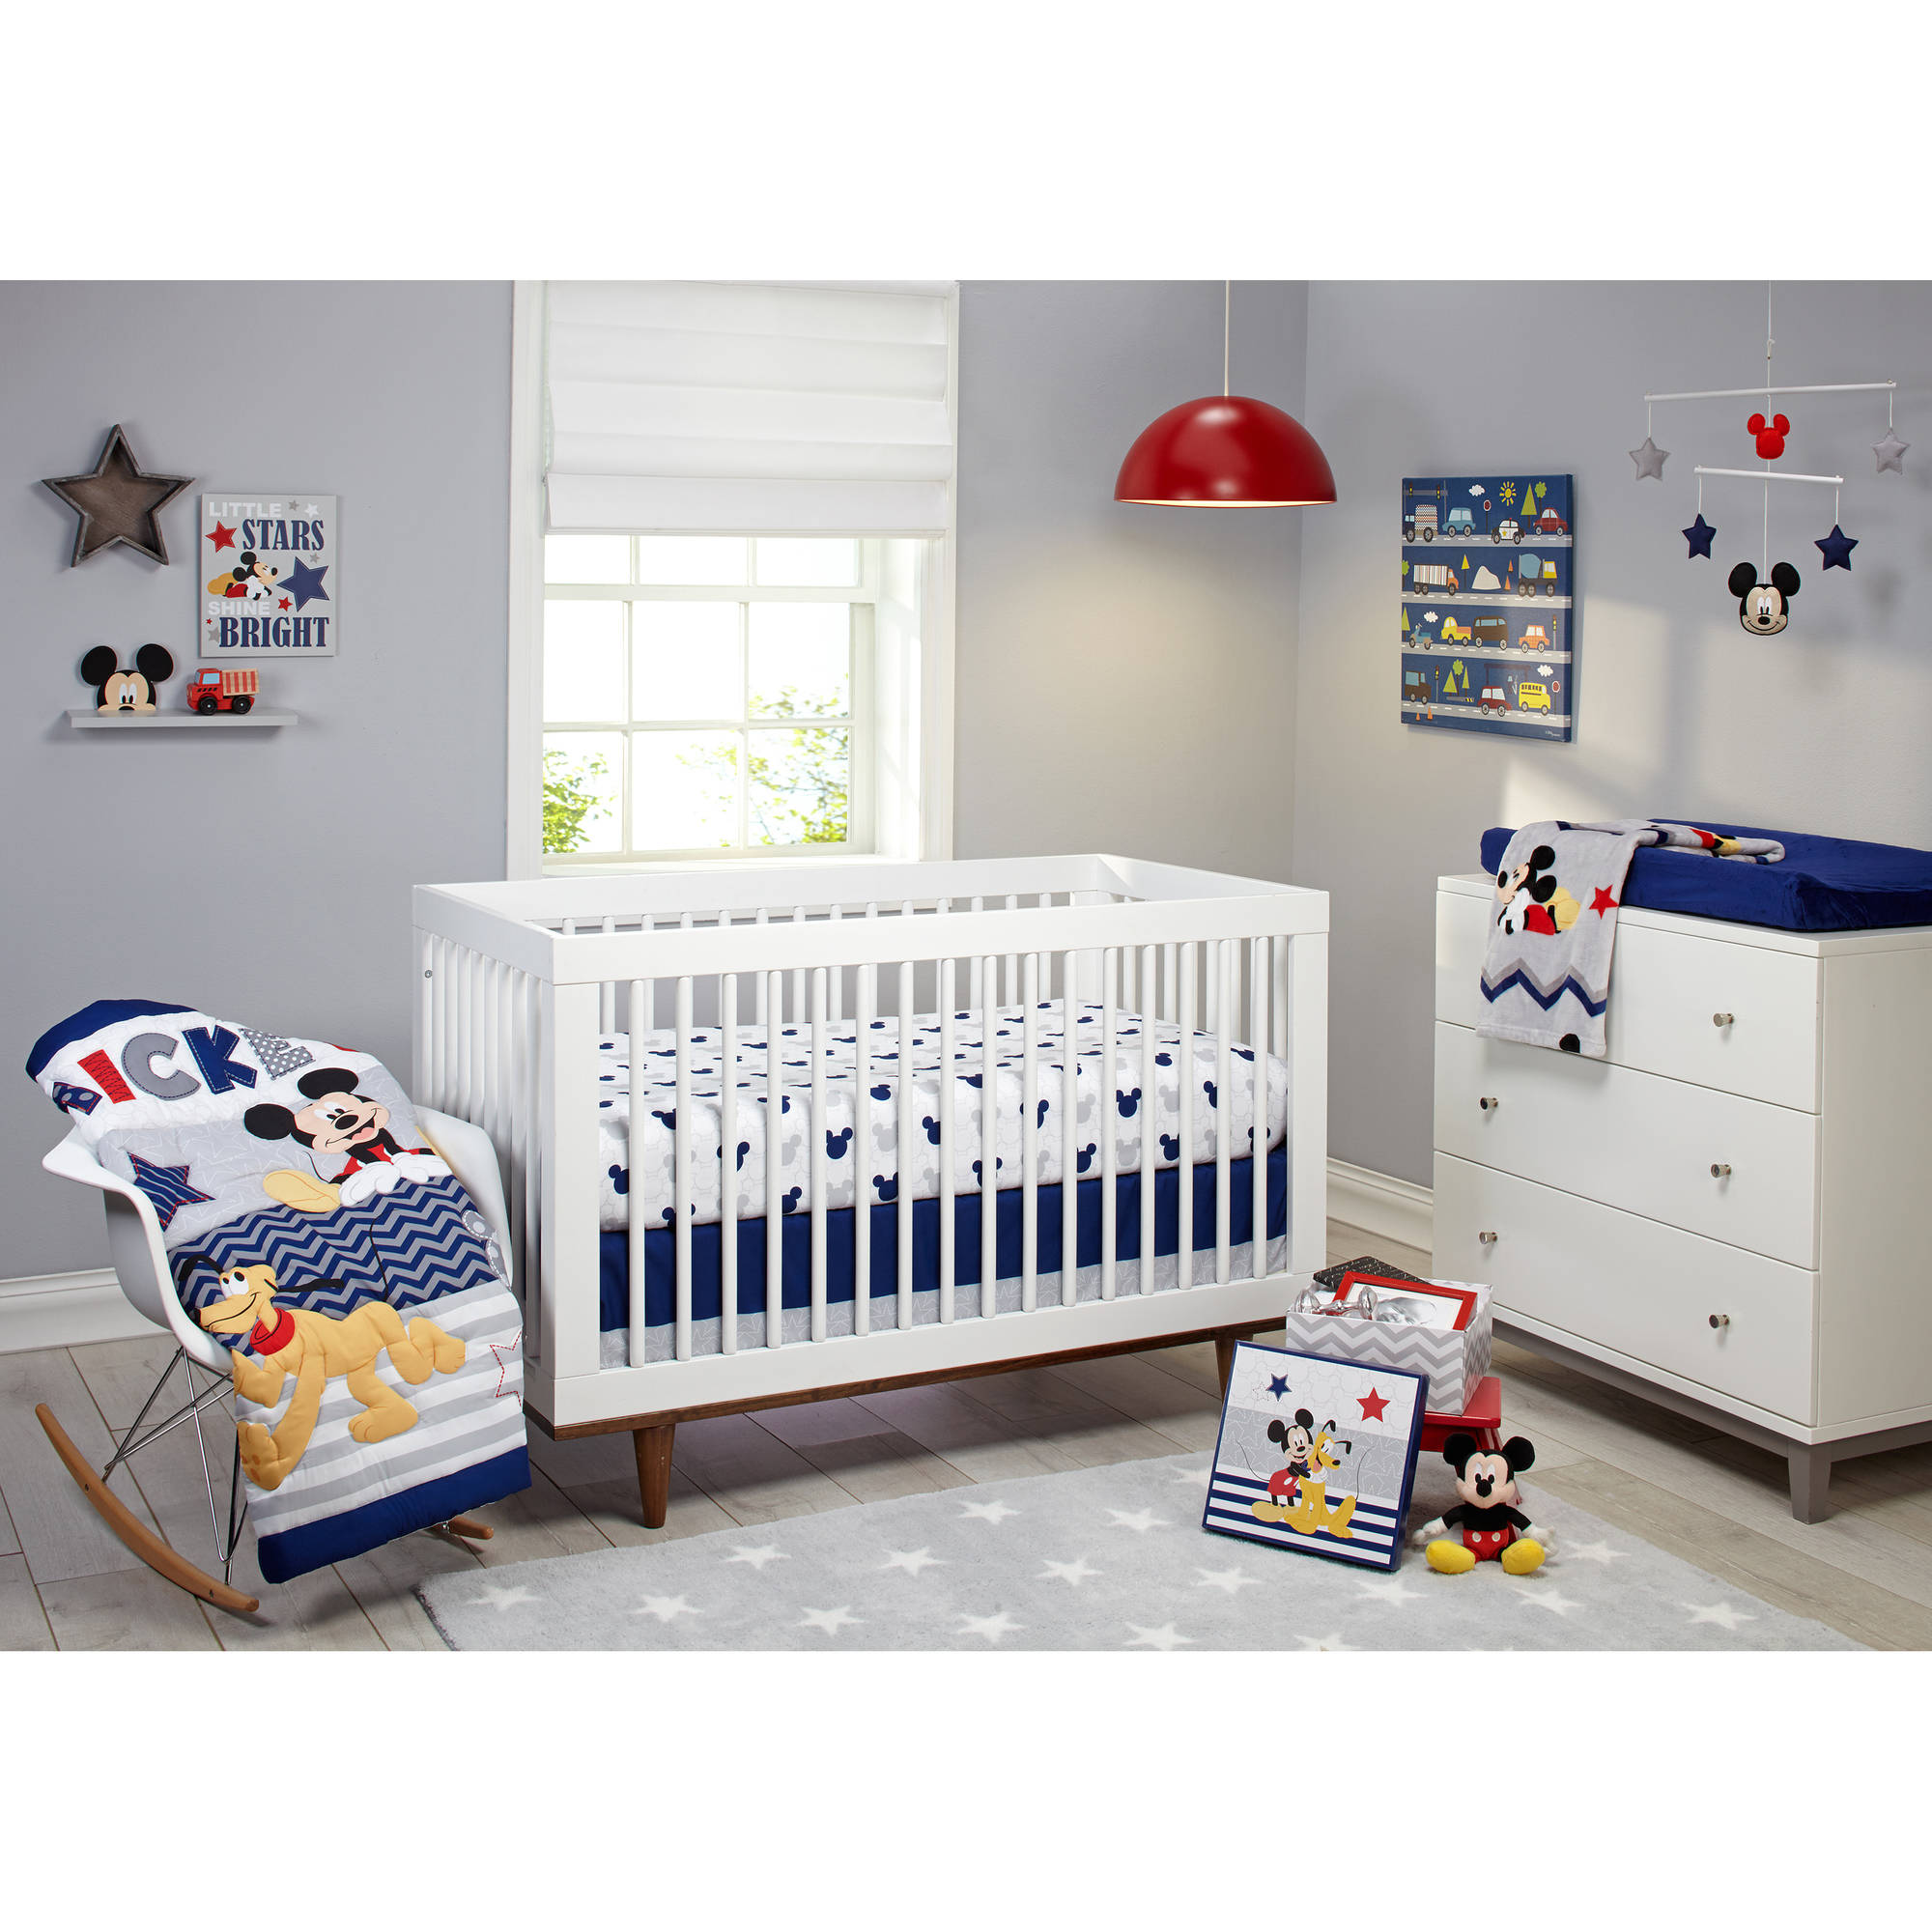 item free on skirt new ups cuna from sheet quilt includes bedding crib bed dog set cot in sets boy baby mother kids cribs pcs bumper car